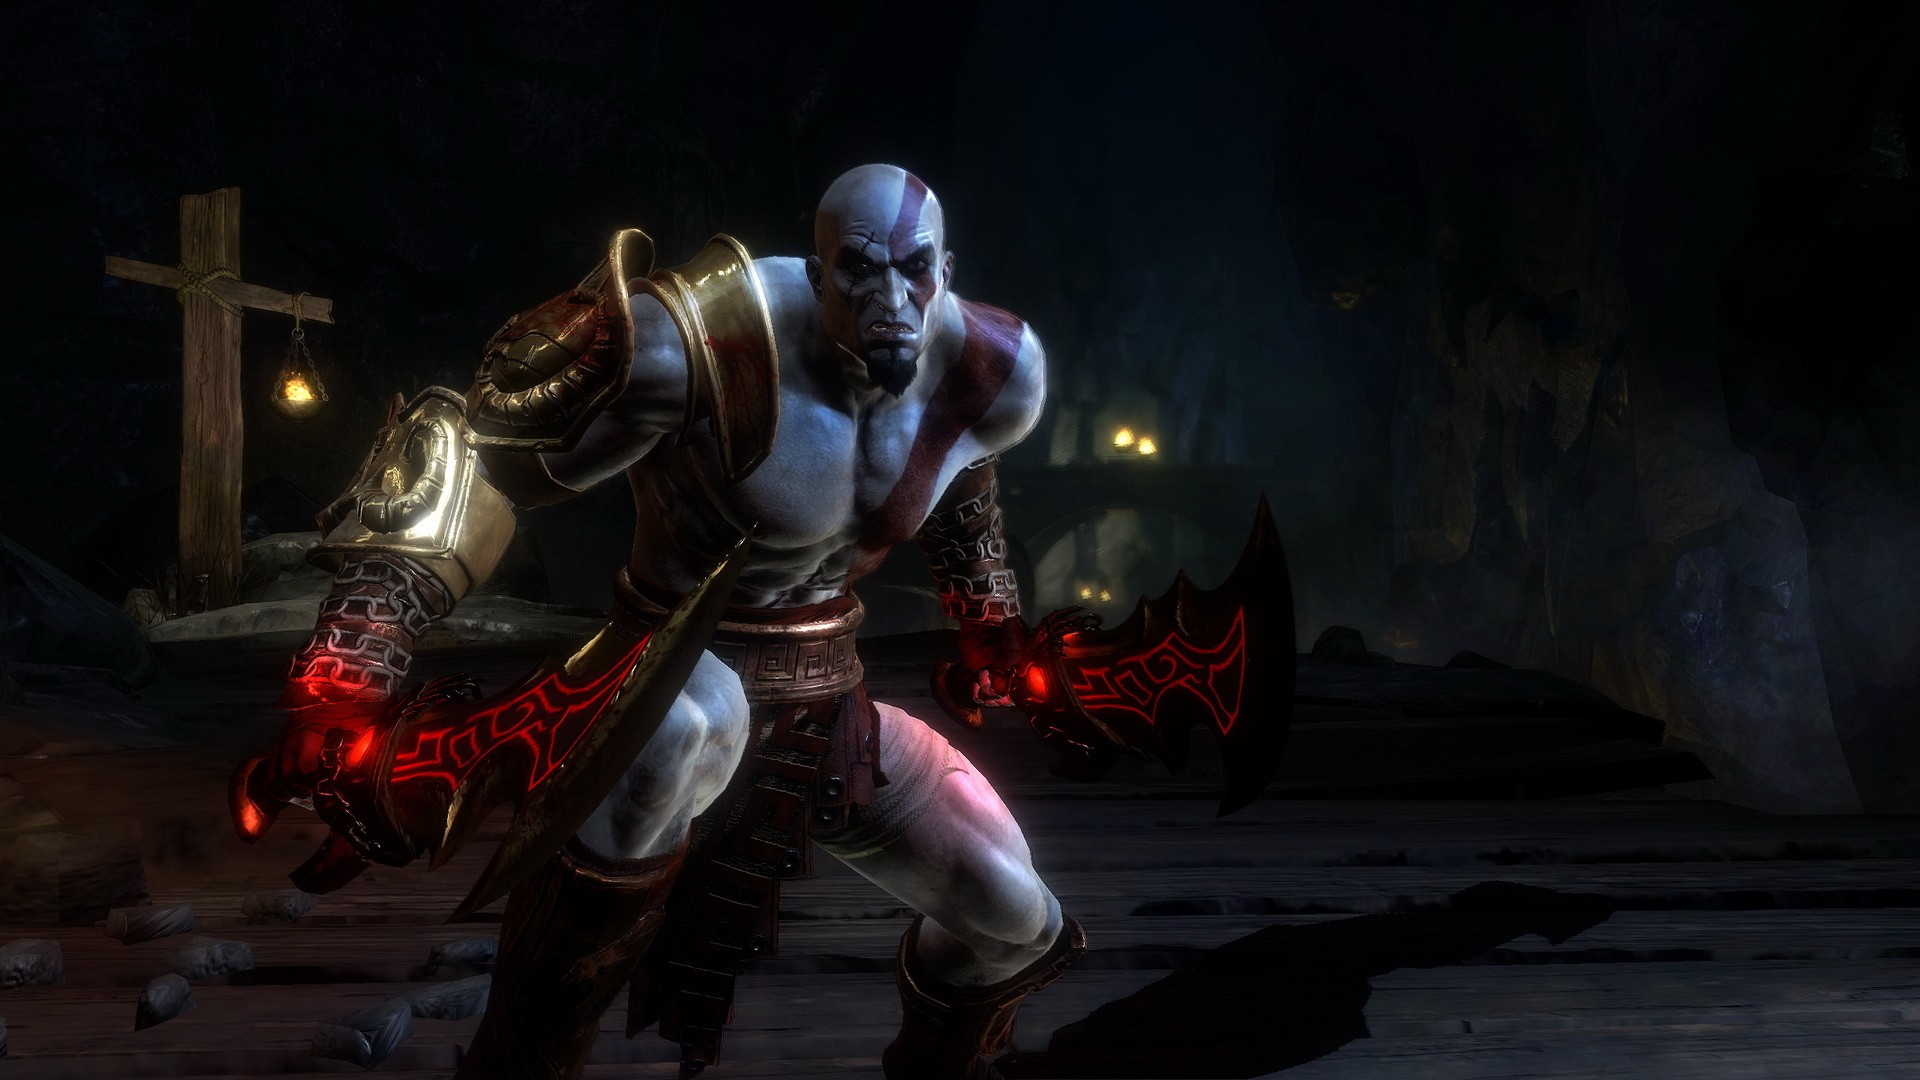 Kratos with red blades of the game God of War 3